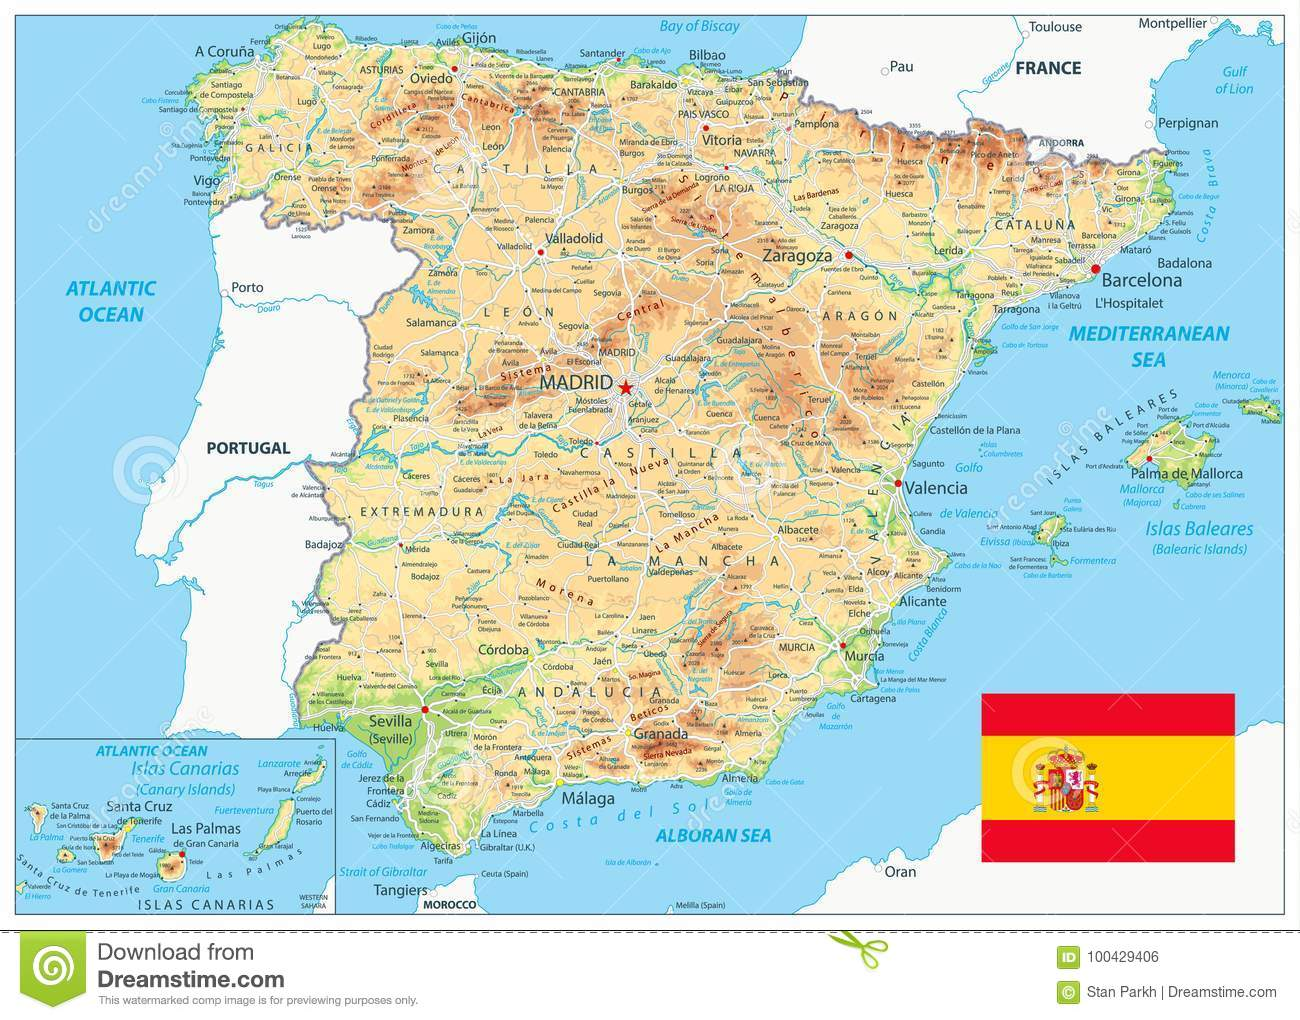 Detailed Map Of Spain.Spain Physical Map Stock Vector Illustration Of City 100429406